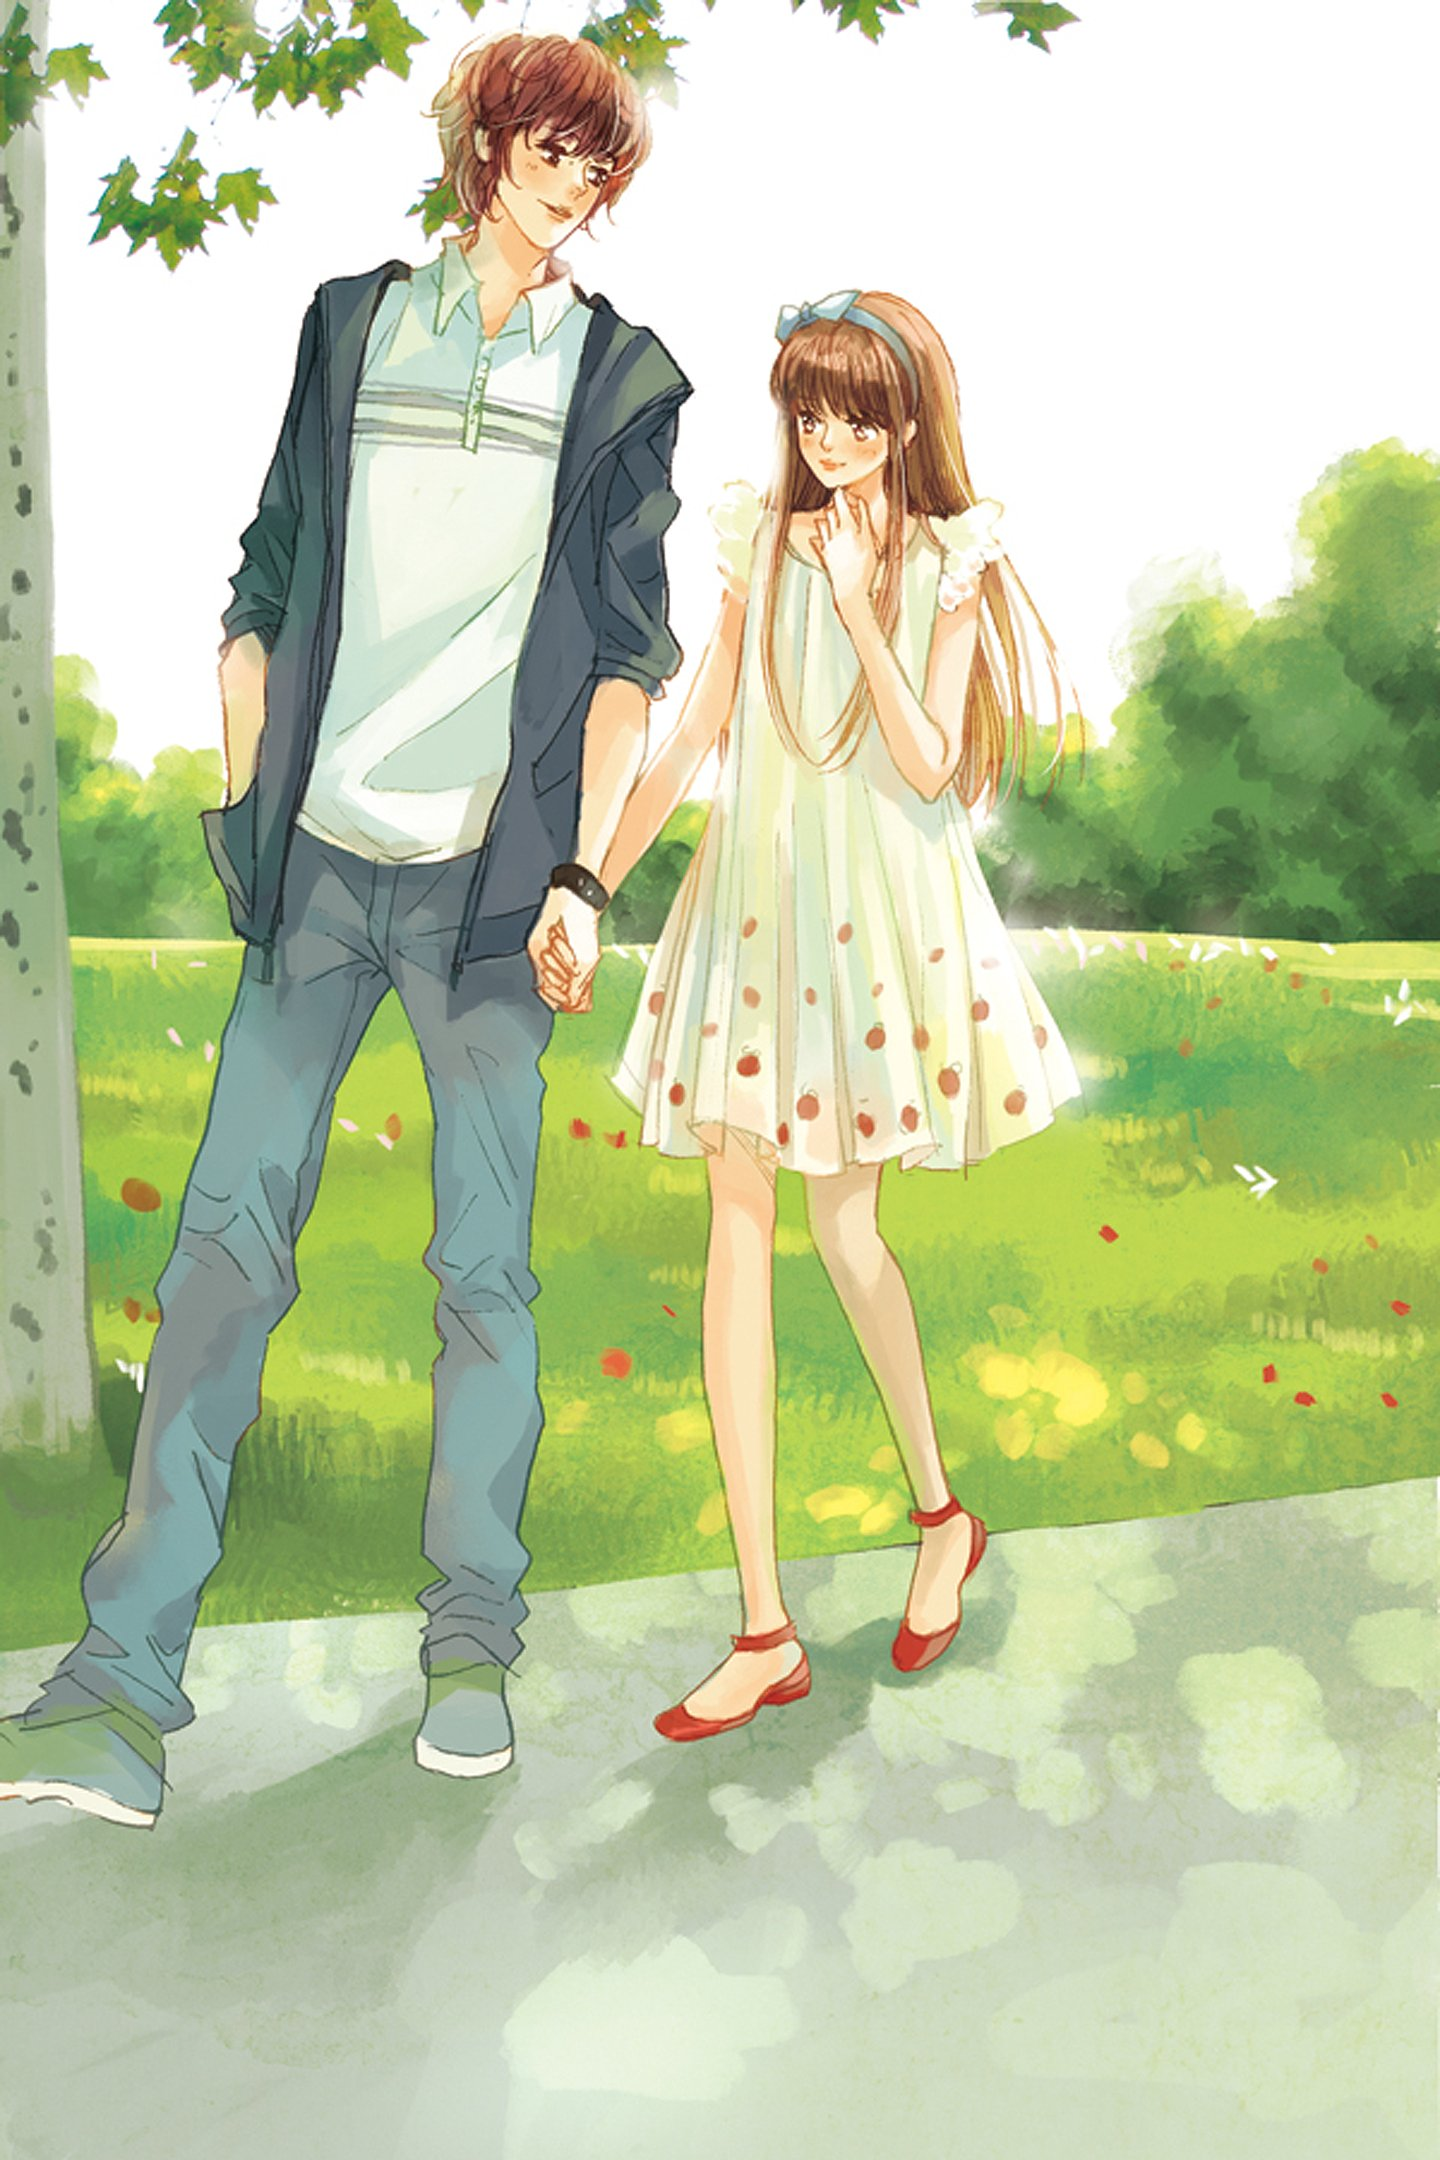 Anime Boy And Girl In Love Wallpaper : Love anime couple boy girl tree red shoes white dress wallpaper 1440x2160 478694 WallpaperUP